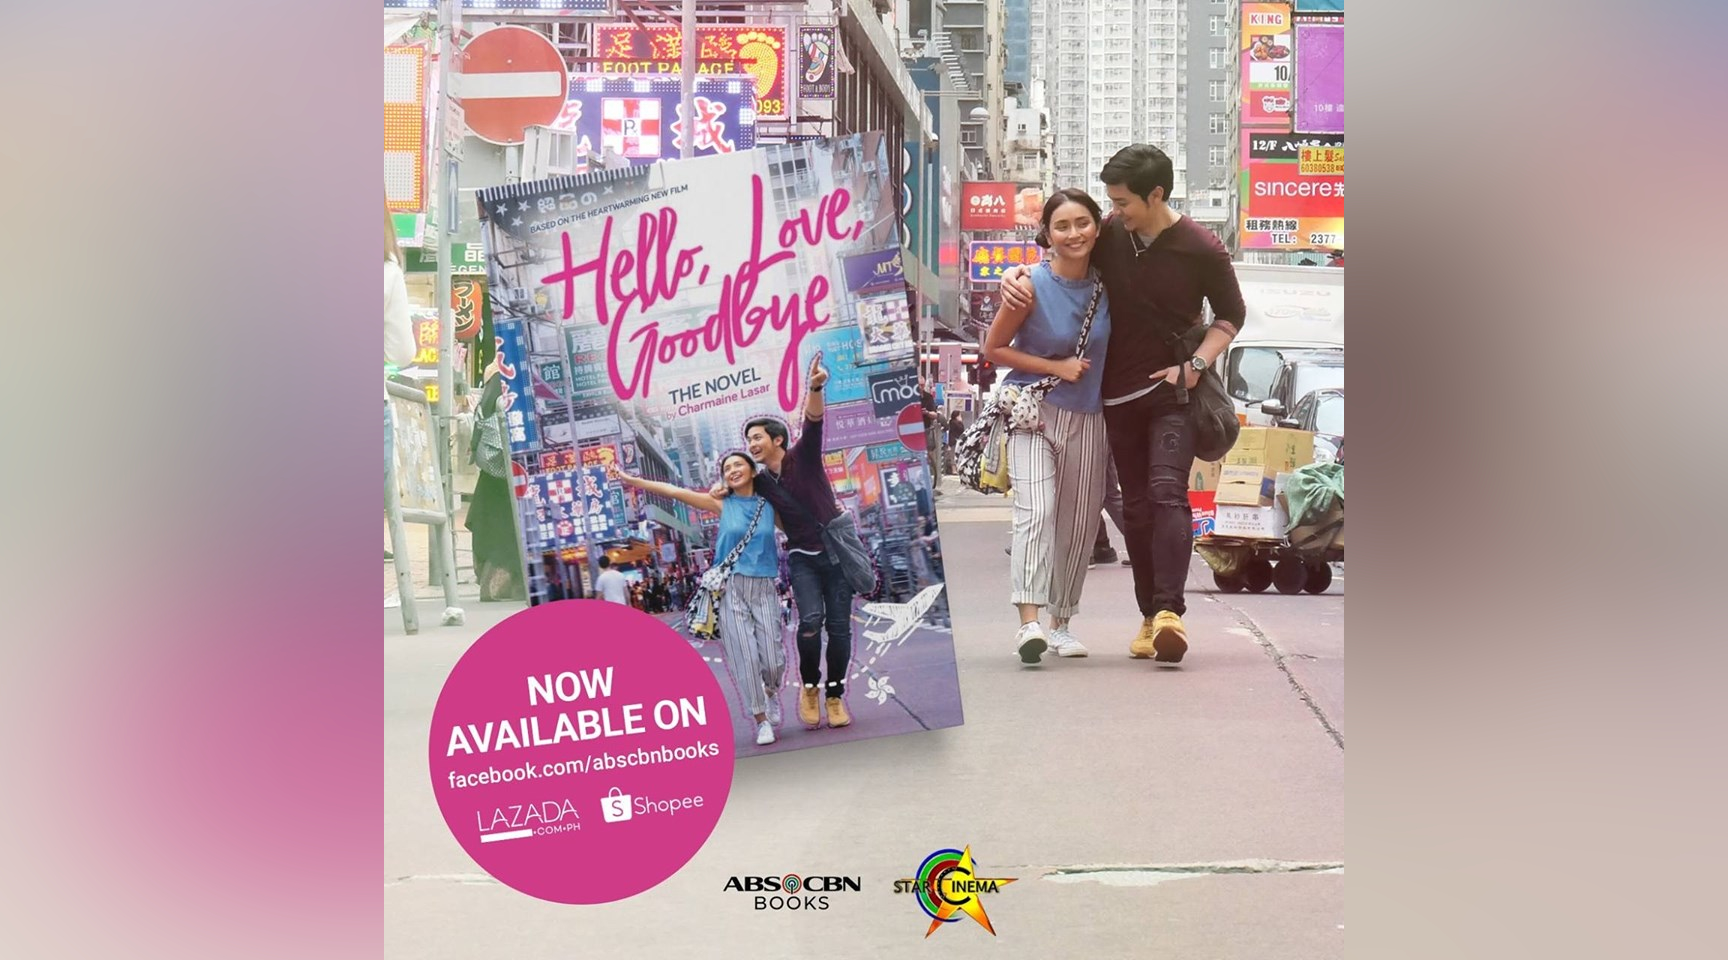 Dip into Joy and Ethan's journey in 'Hello, Love, Goodbye' book